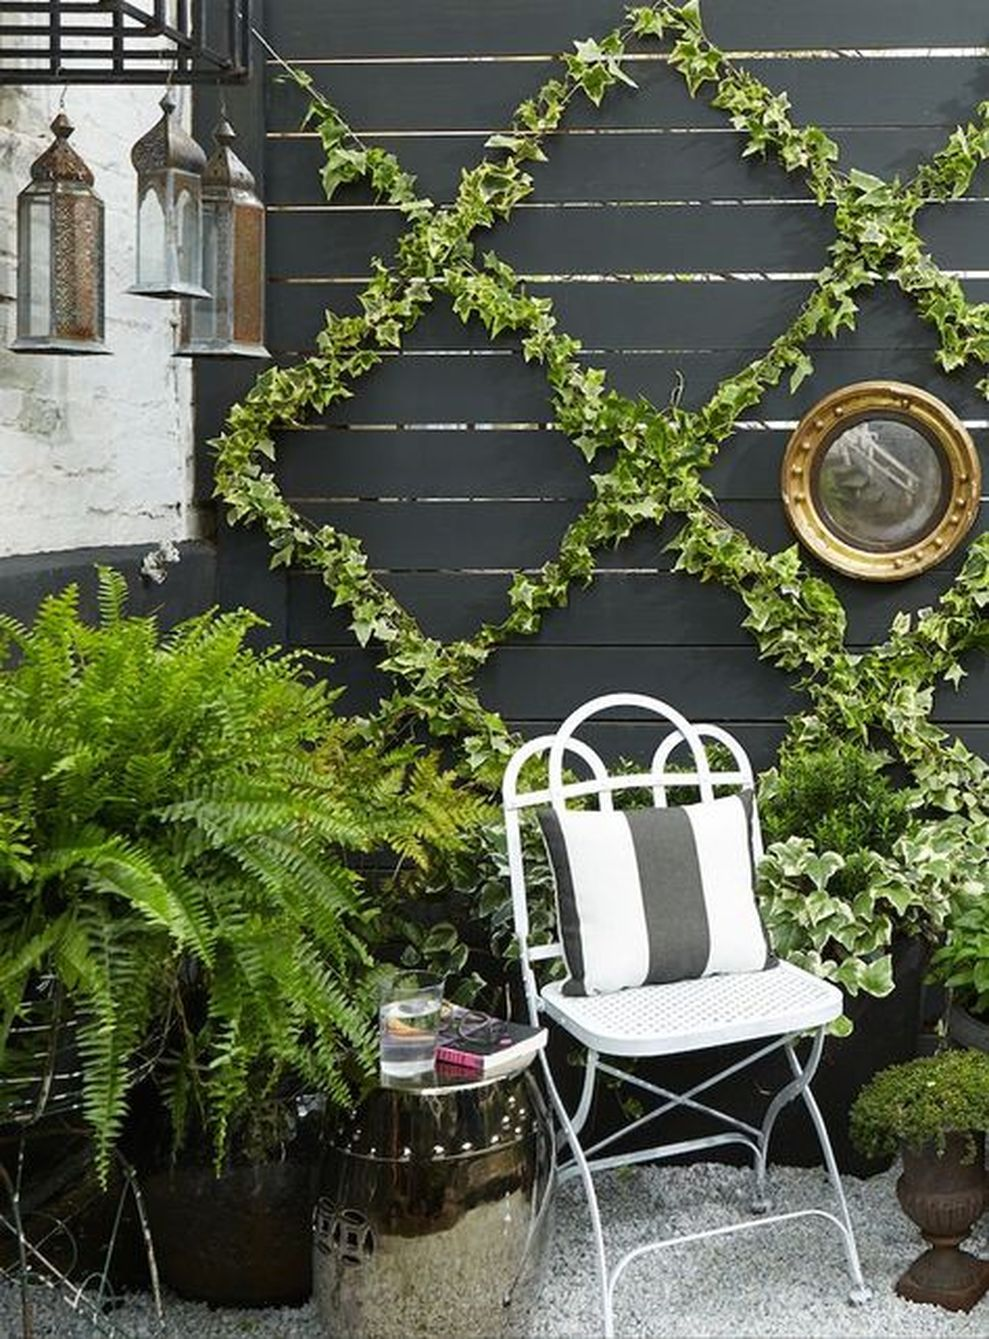 87 Cute and Simple Tiny Patio Garden Ideas | Pinterest | Garden ...